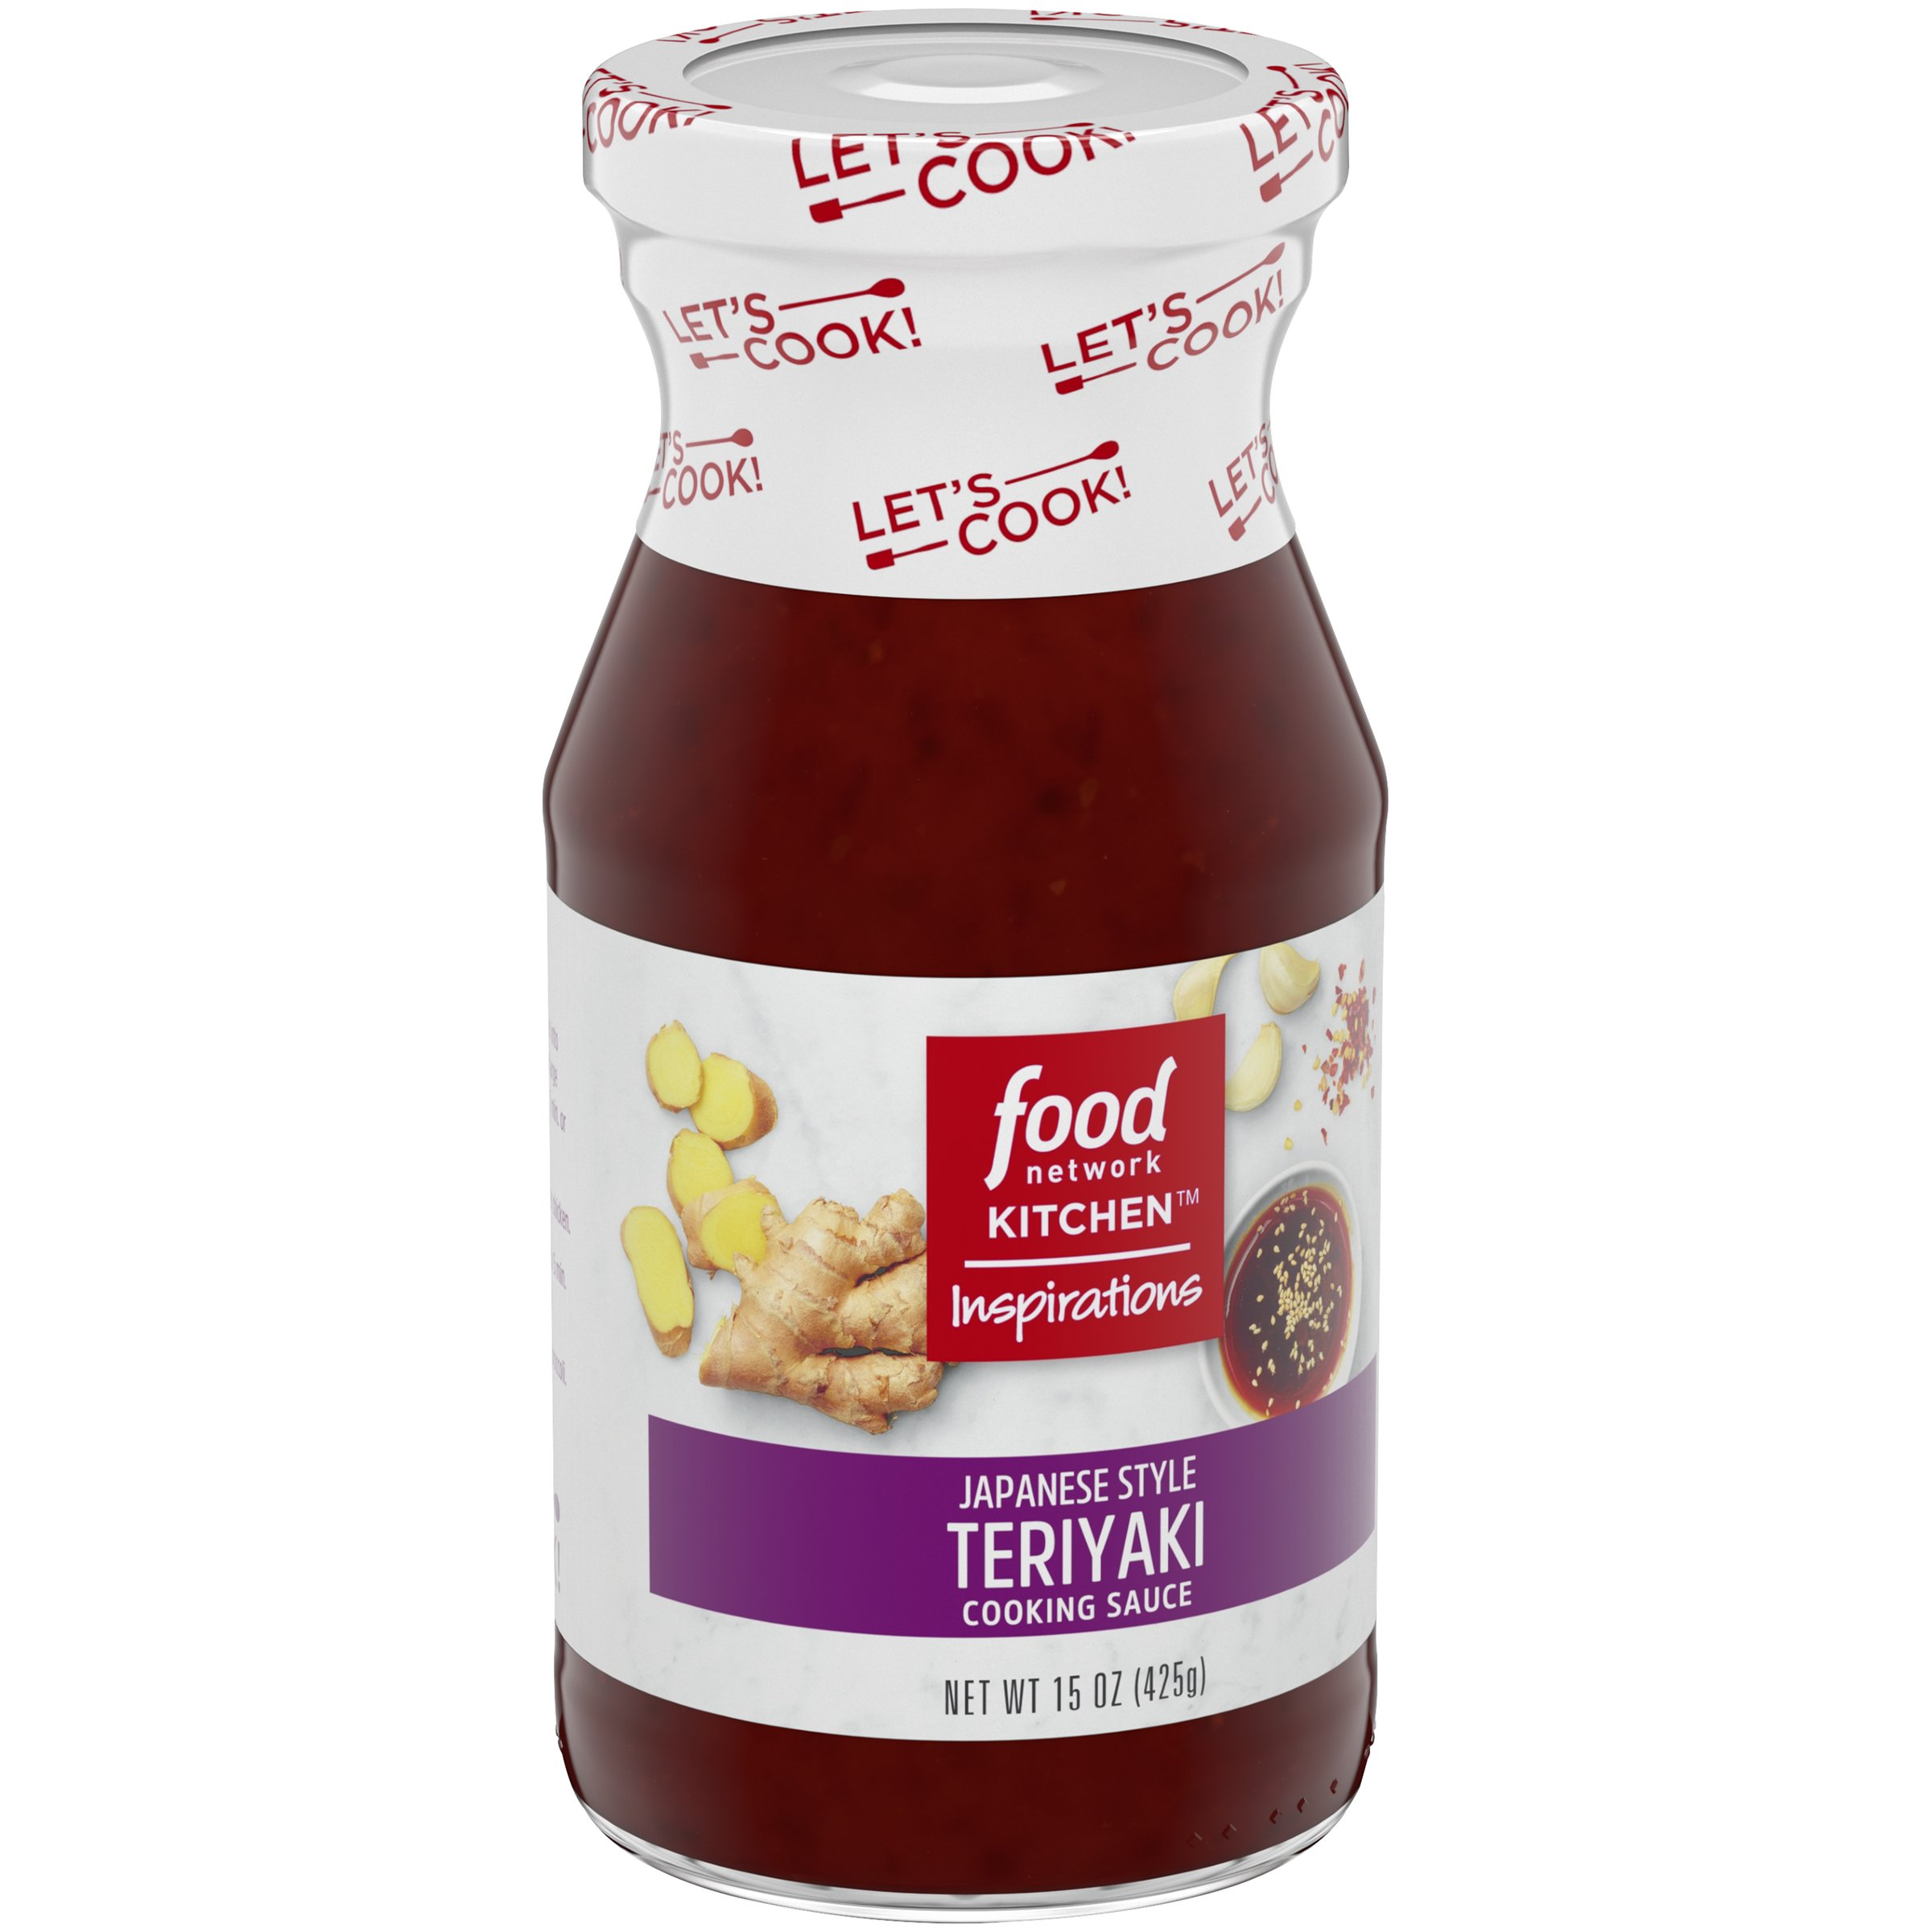 Food Network Kitchen Inspirations Japanese Style Teriyaki Cooking Sauce, 15 oz